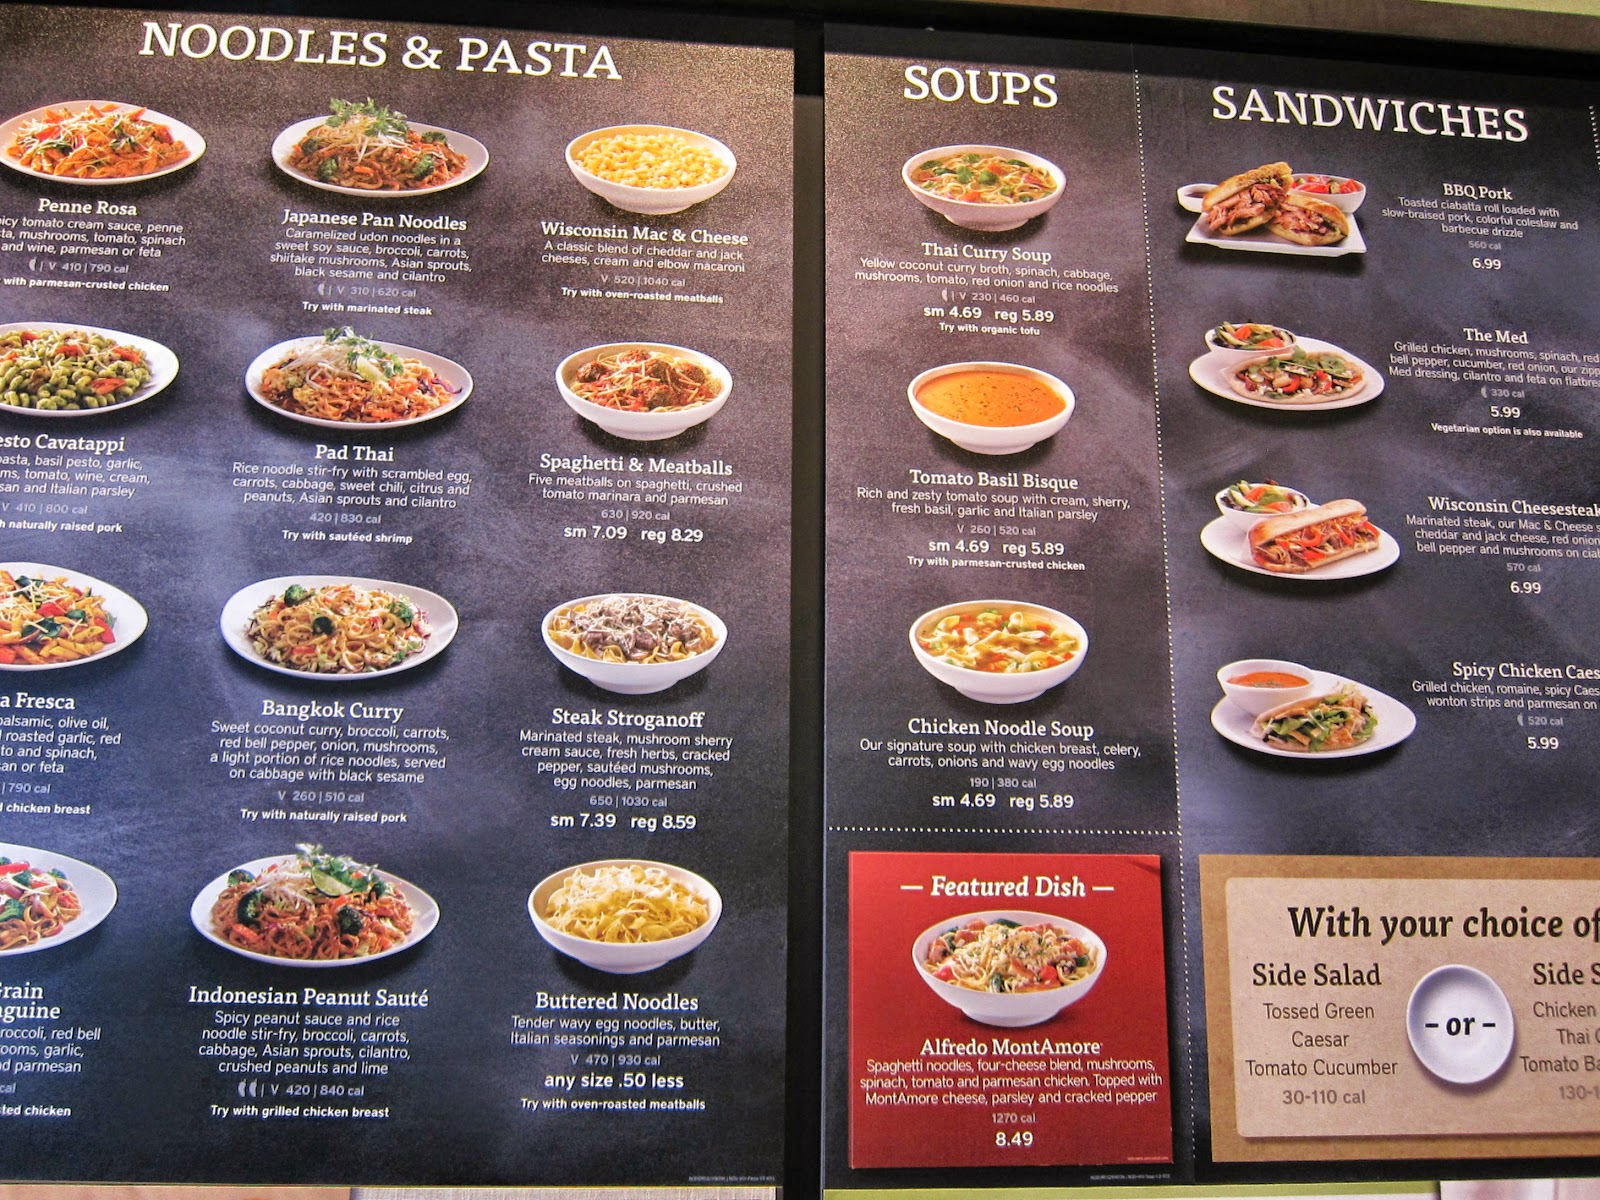 picture regarding Noodles and Company Printable Menu referred to as Noodles And business enterprise Coupon Code january 2019 promo